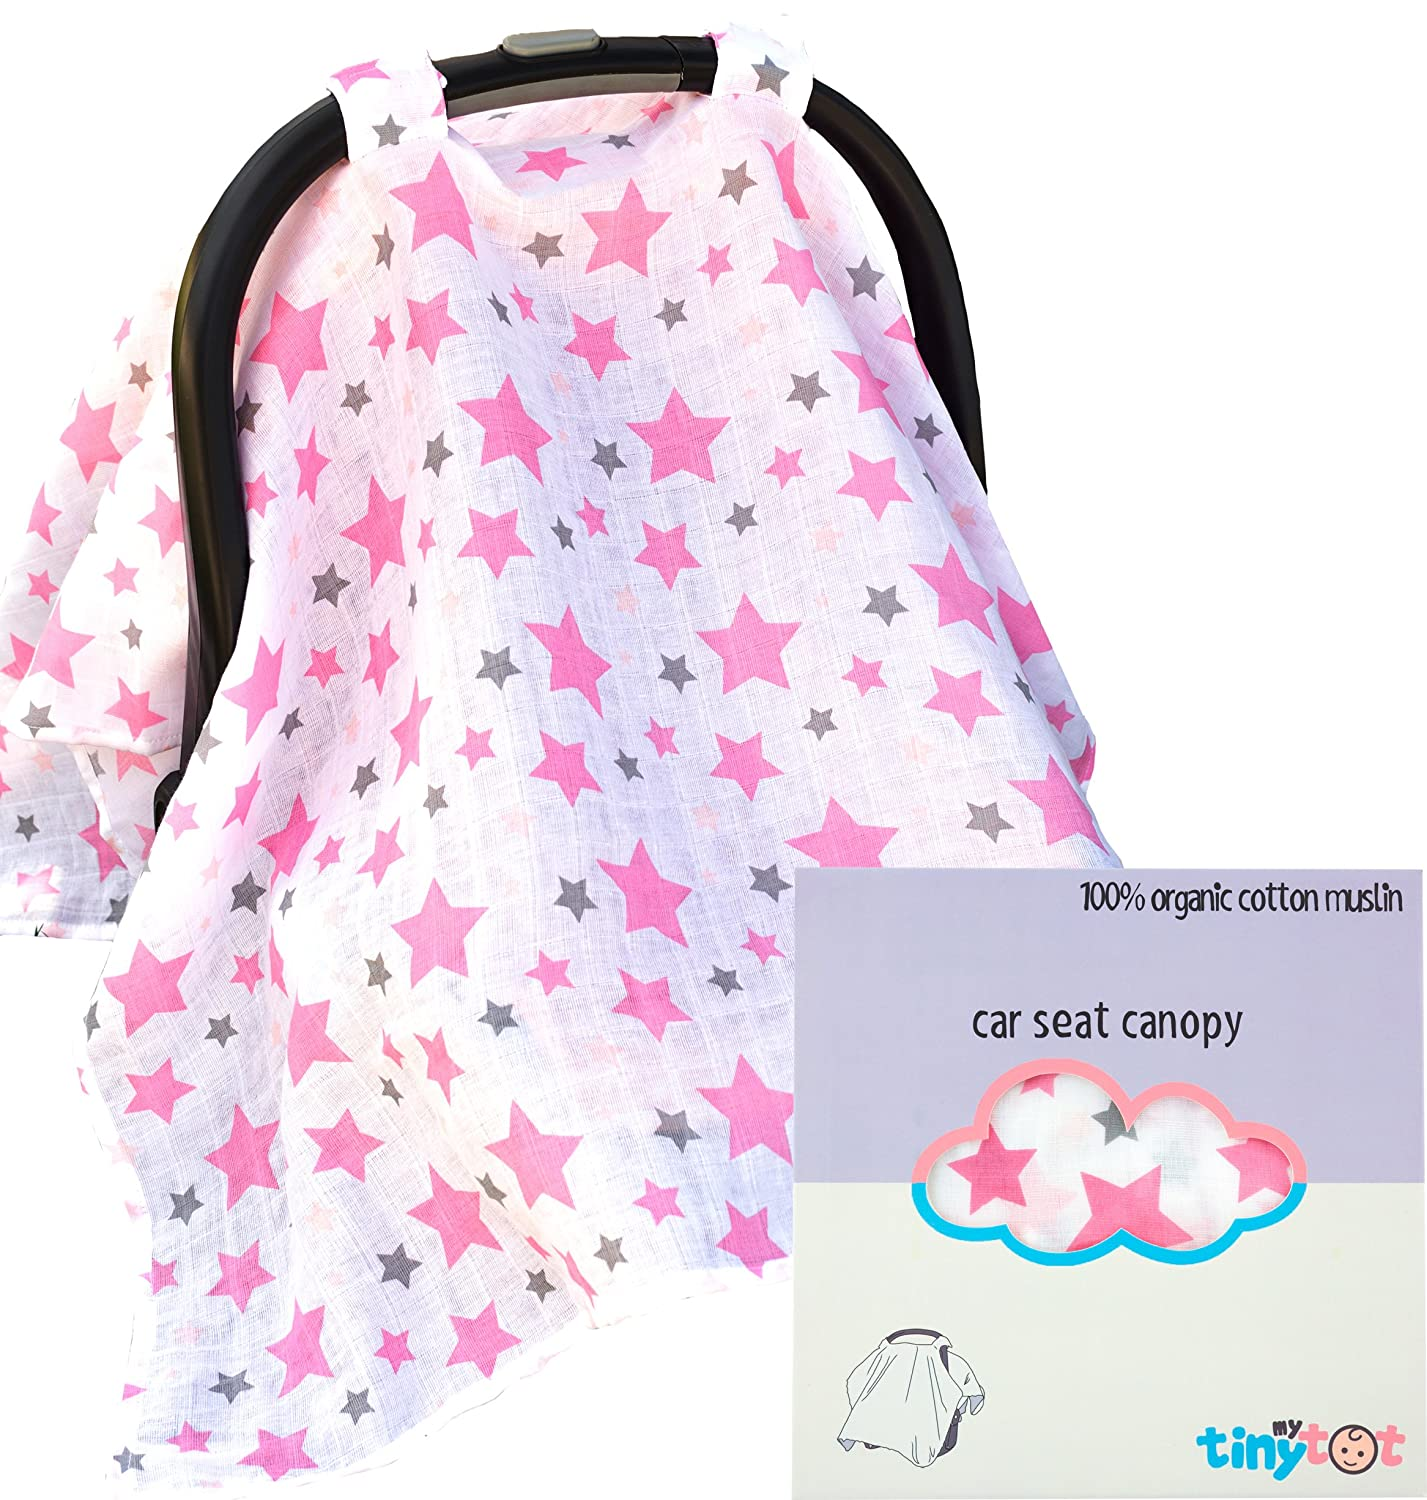 Car Seat Cover - 100% Organic Cotton - Canopy Style Cover Easily Attaches to Any Car Seat to Protect Baby From Sun or Wind, Made of Highest Quality Breathable Fabric, Cute Design for Girls My Tiny Tot